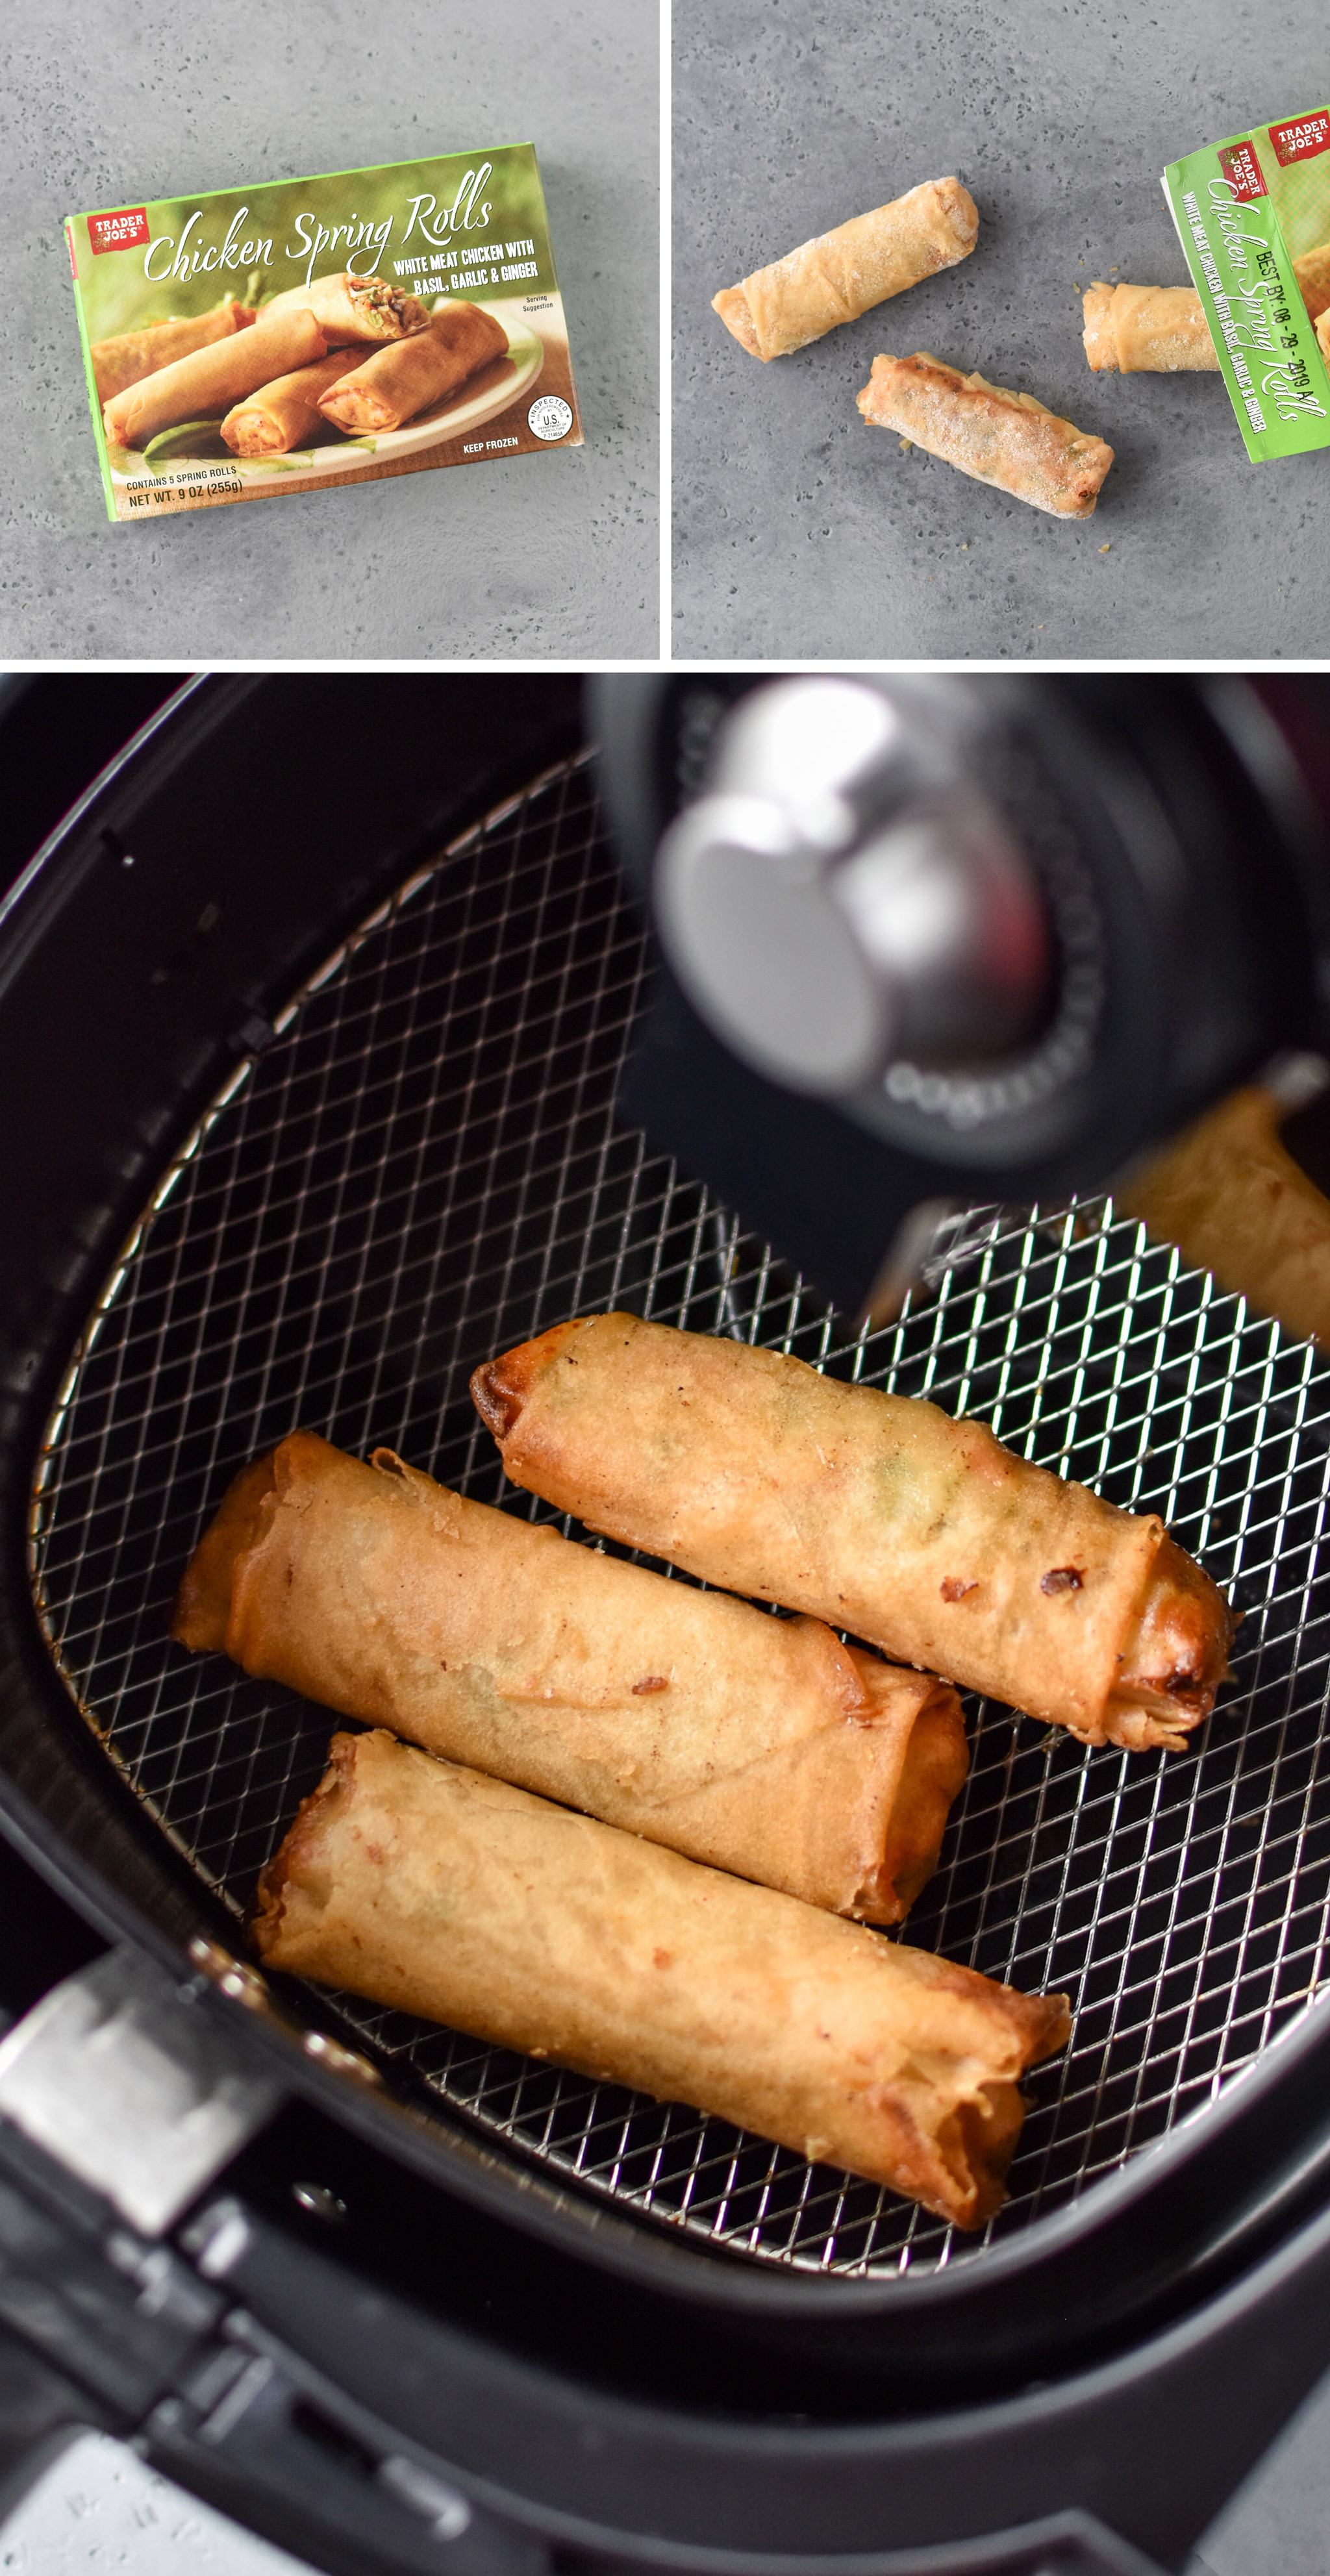 chicken spring rolls from trader joe's made in the air fryer